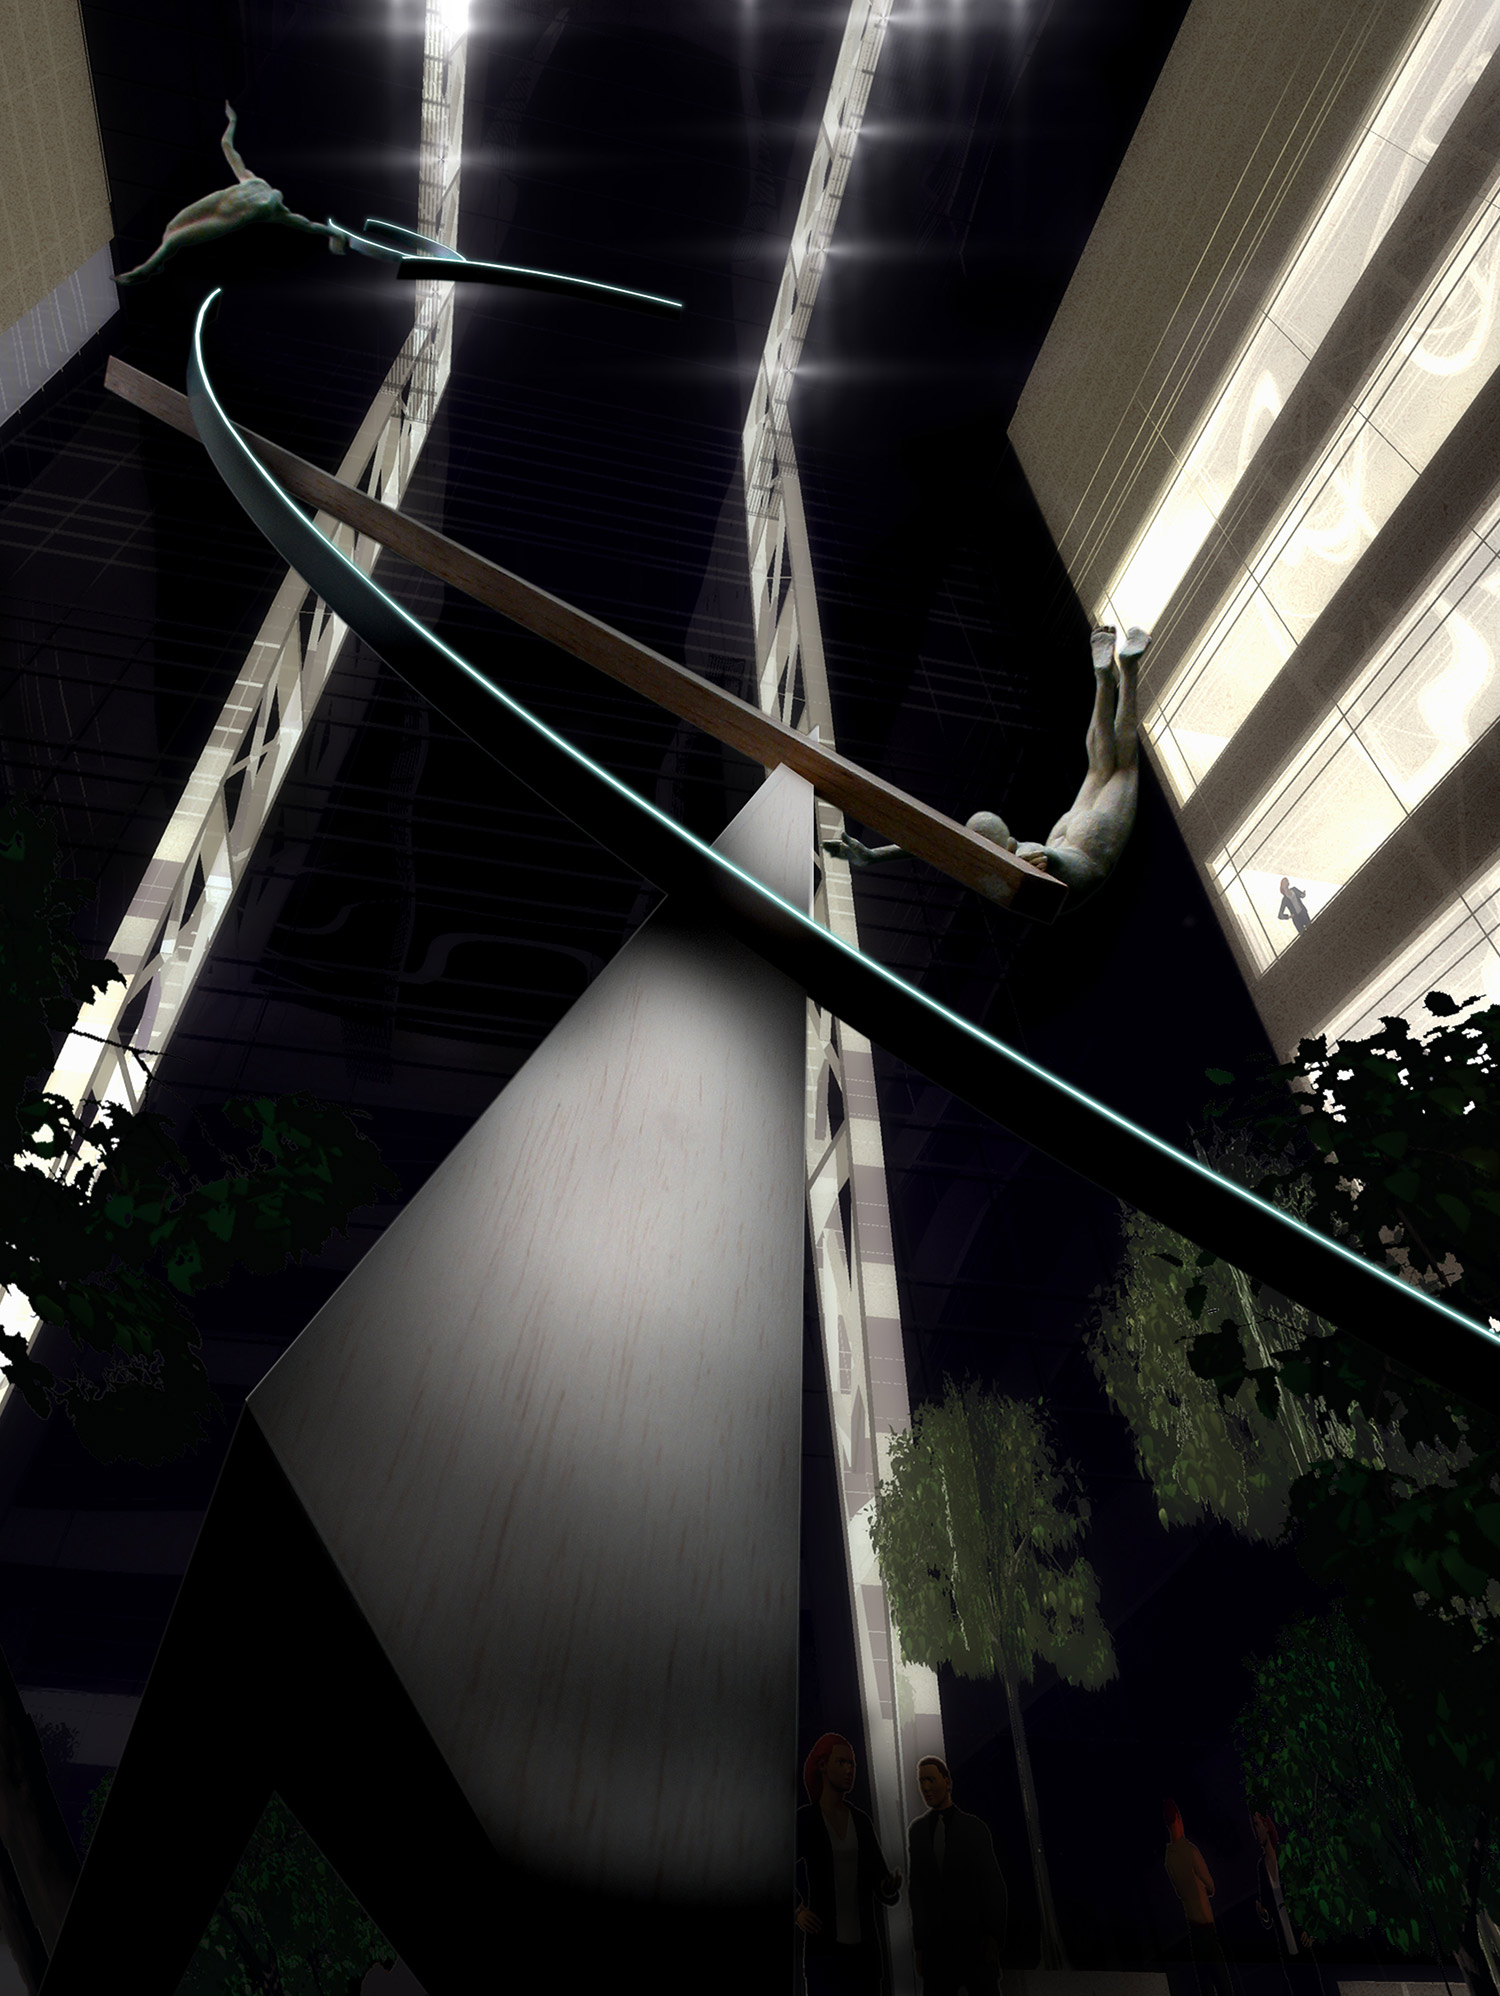 Archimedes Dream. 6. Canary Wharf. Pierre Diamantopoulo. Copyright.jpg